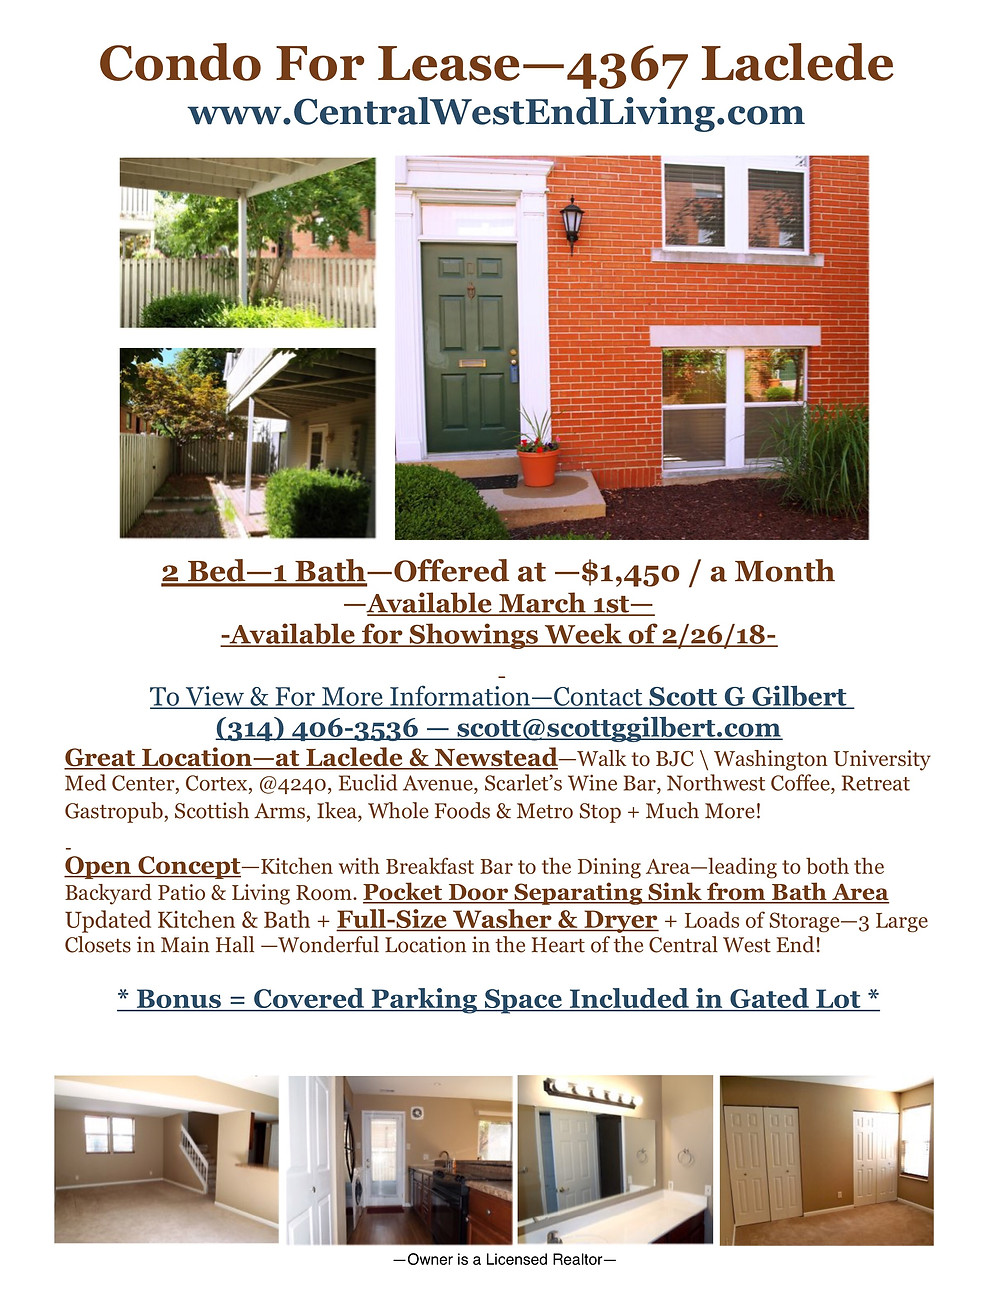 Condo For Lease | Central West End | Laclede | Newstead | March 2018